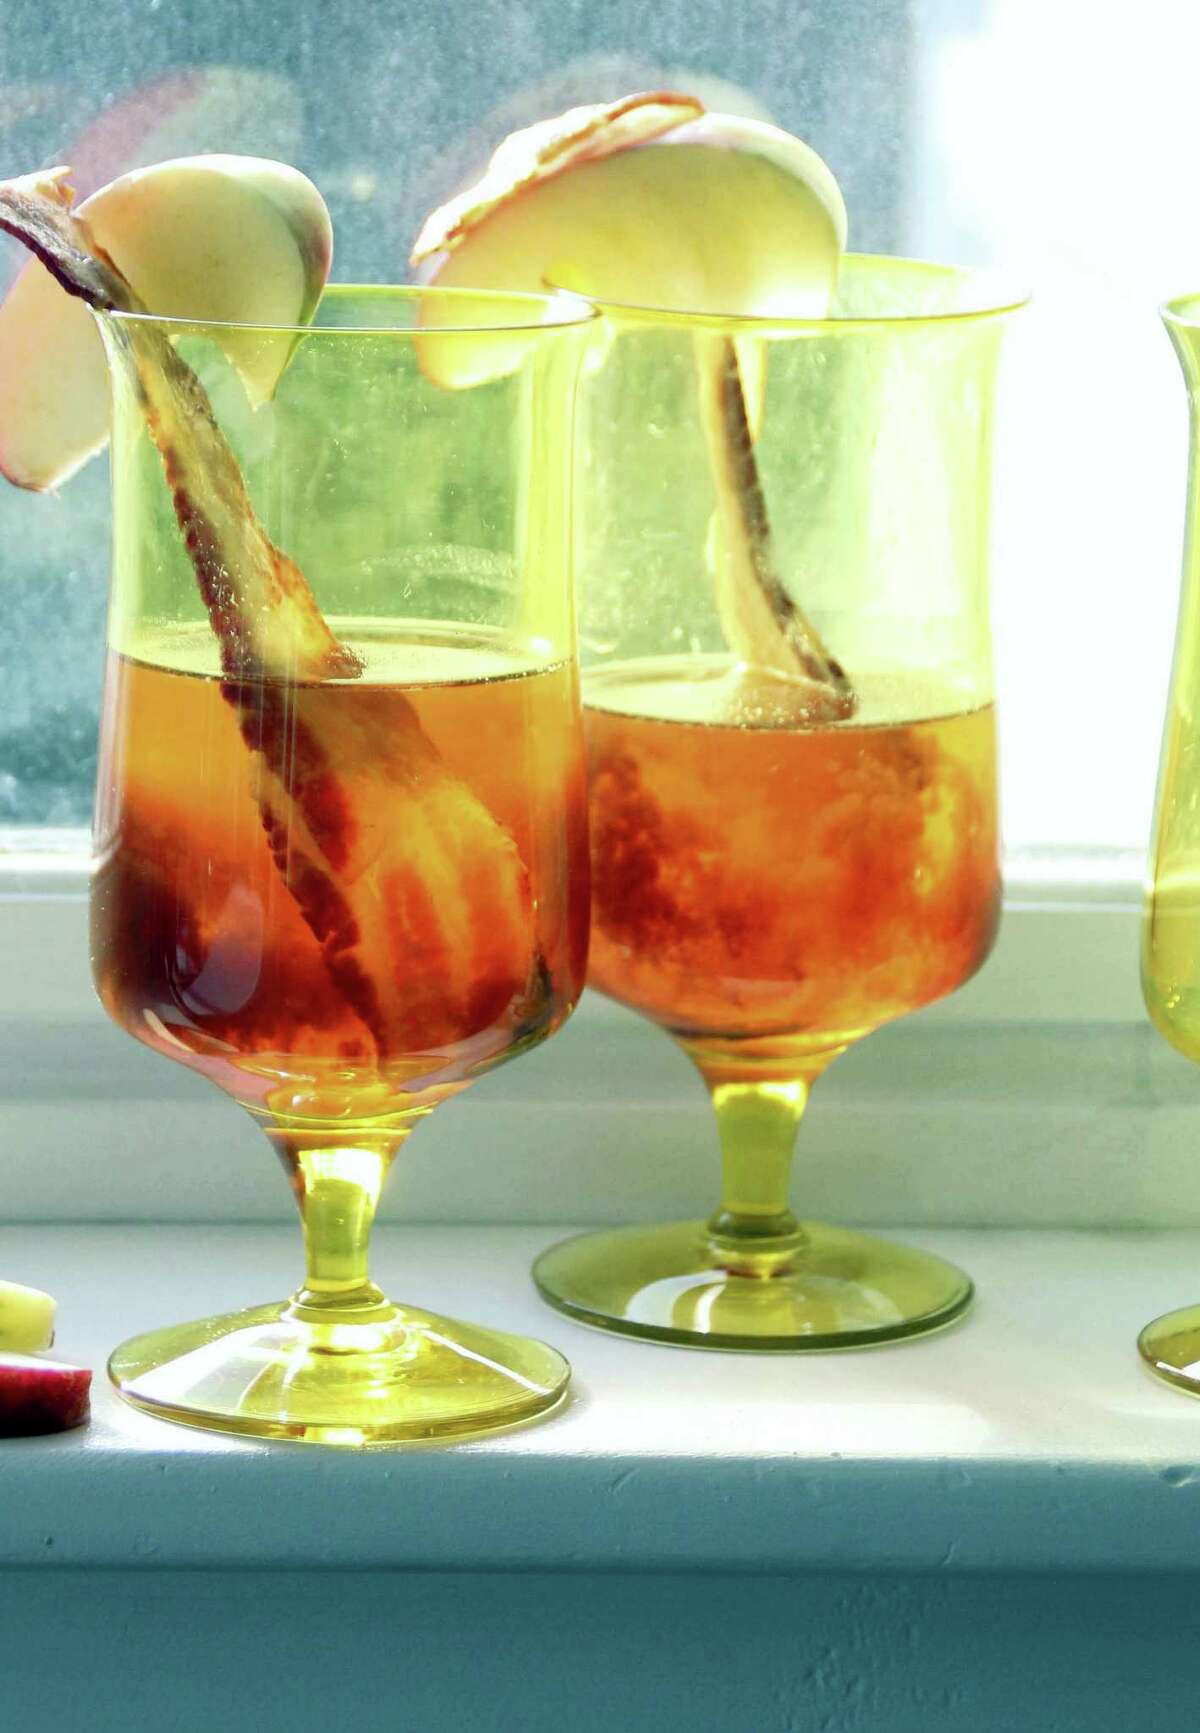 The Muppets Make Manhattans is made with apple brandy and sweet vermouth, with an apple slice and bacon garnish.